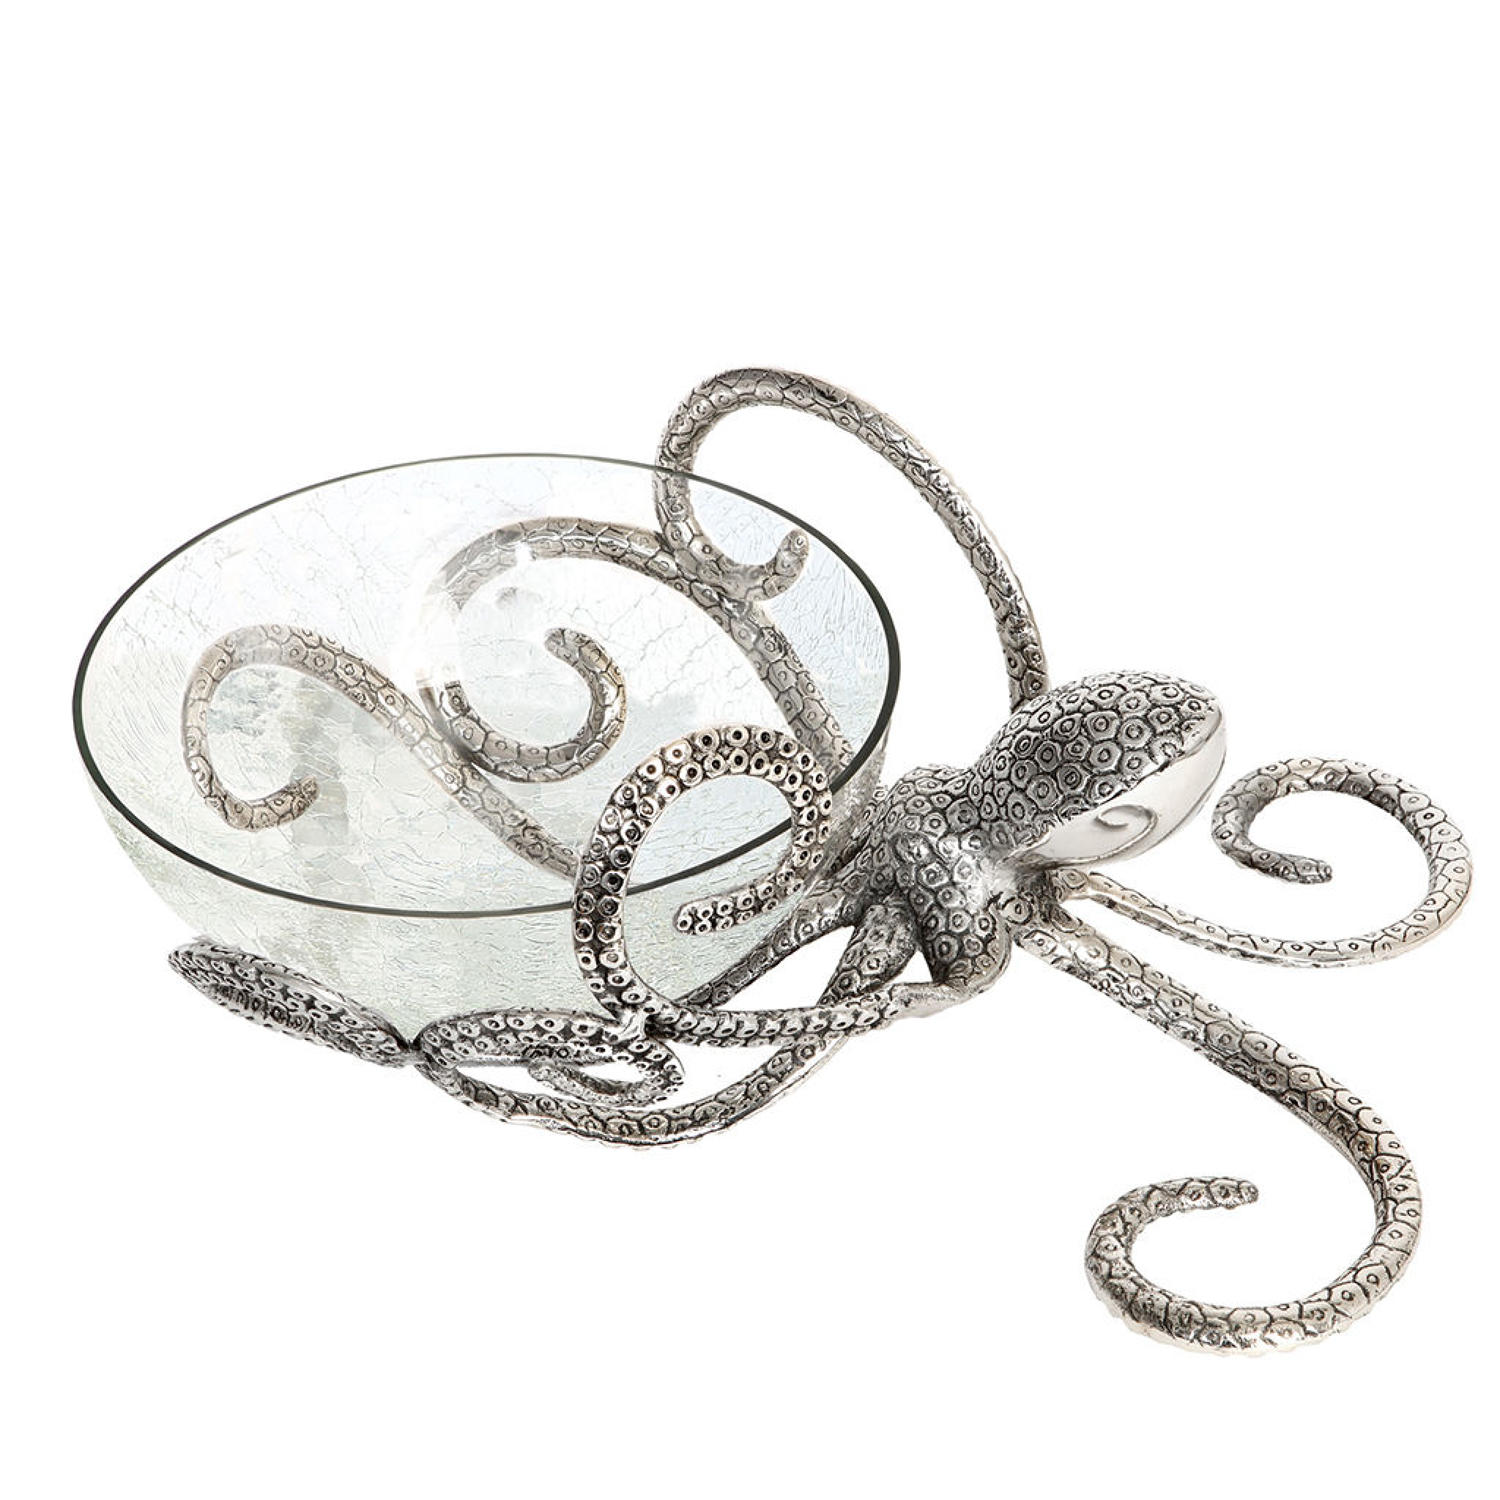 Octopus Base glass bowl